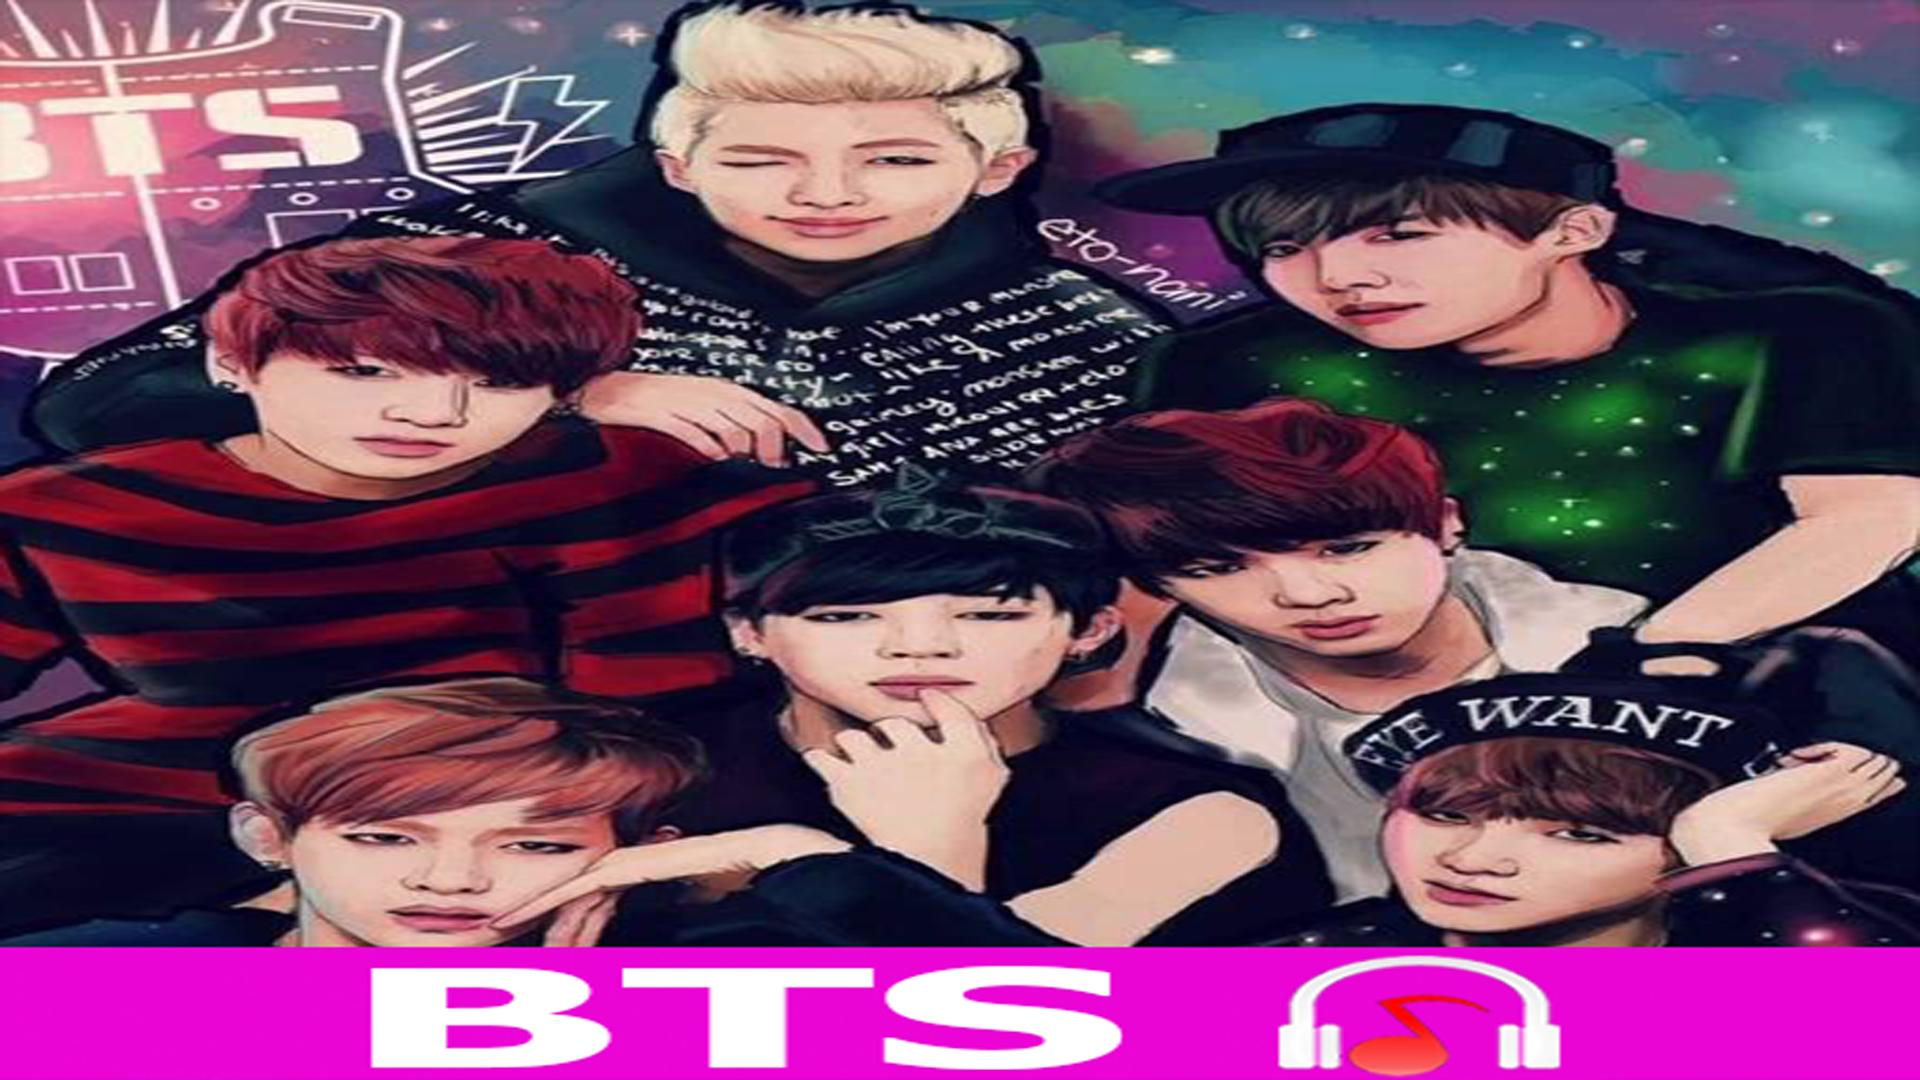 BTS Music - All BTS Songs Mp3 for Android - APK Download